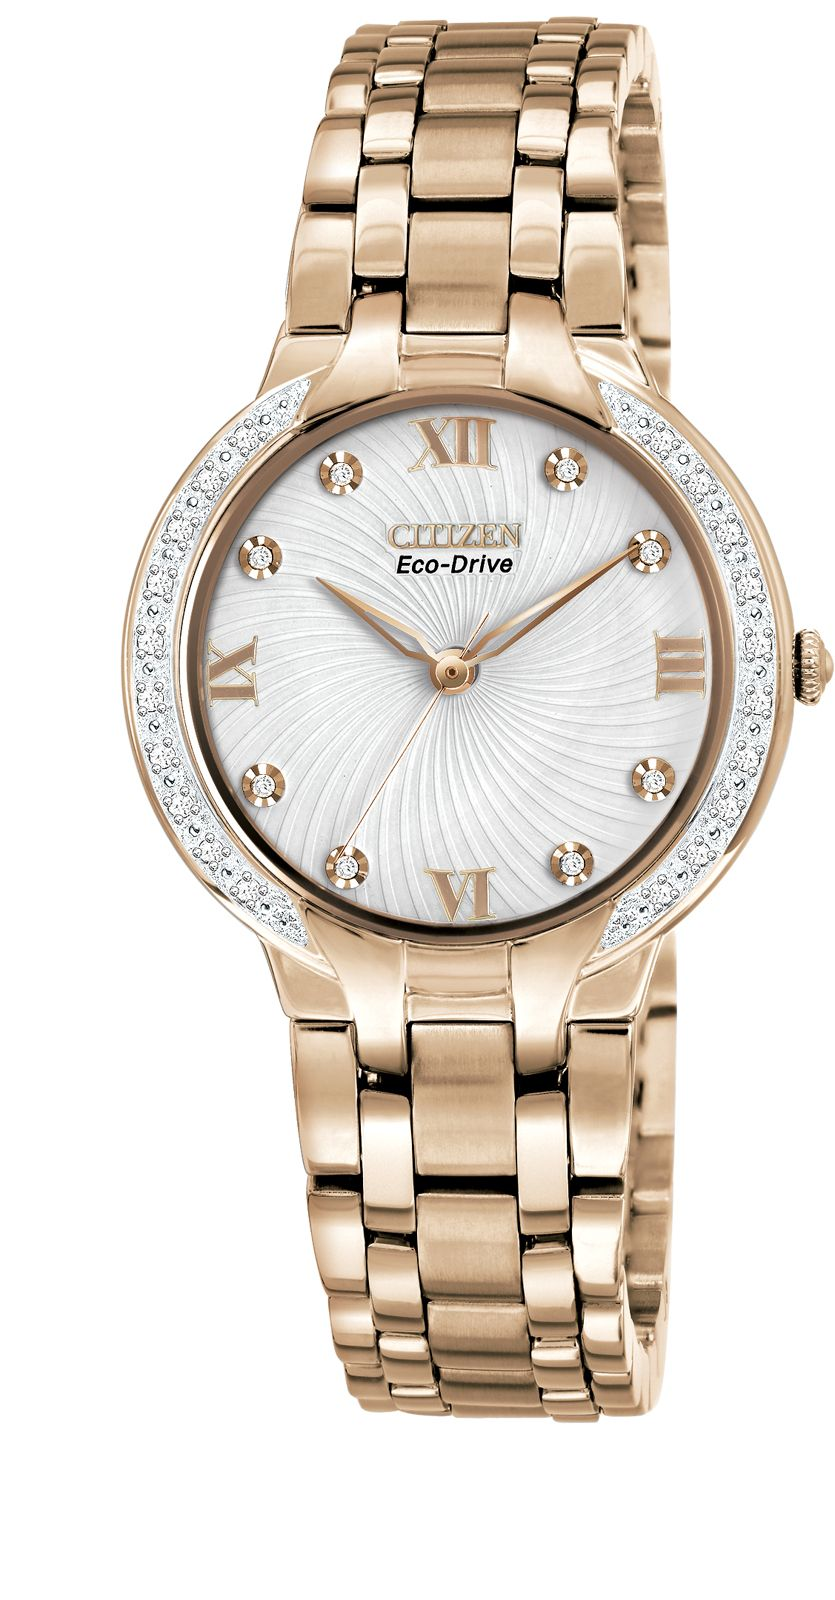 Citizen Eco-drive bella 28 diamonds ladies watch